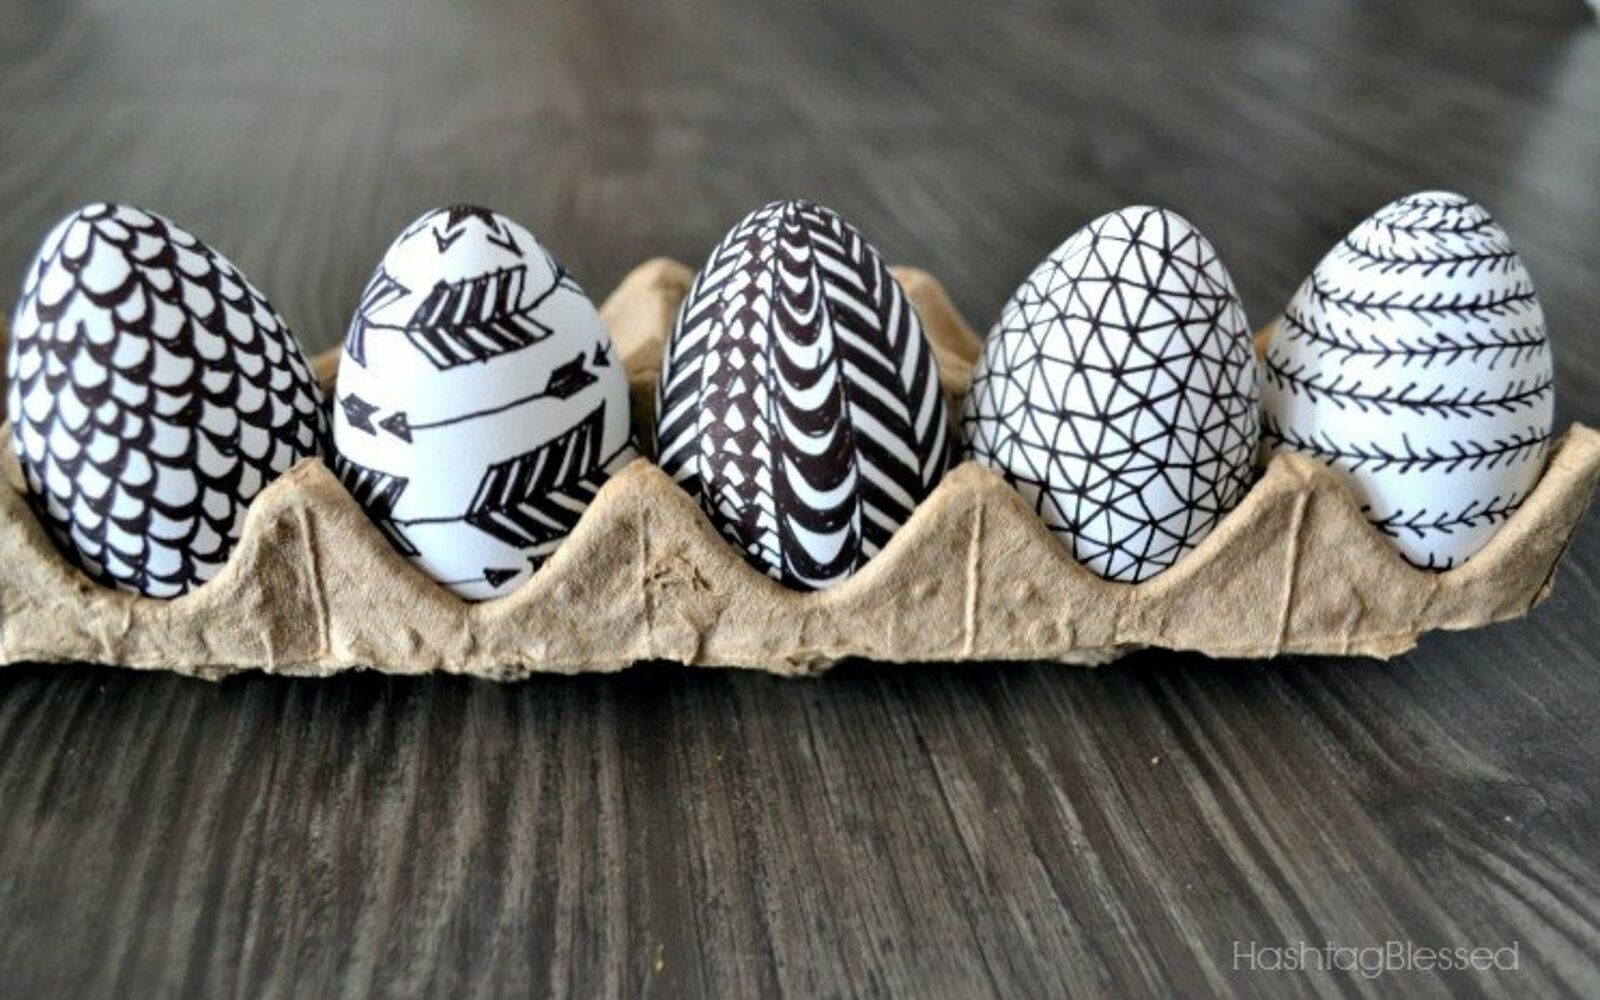 s 25 quick easter egg ideas that are just too stinkin cute, crafts, easter decorations, Doodle on a couple eggs with Sharpies